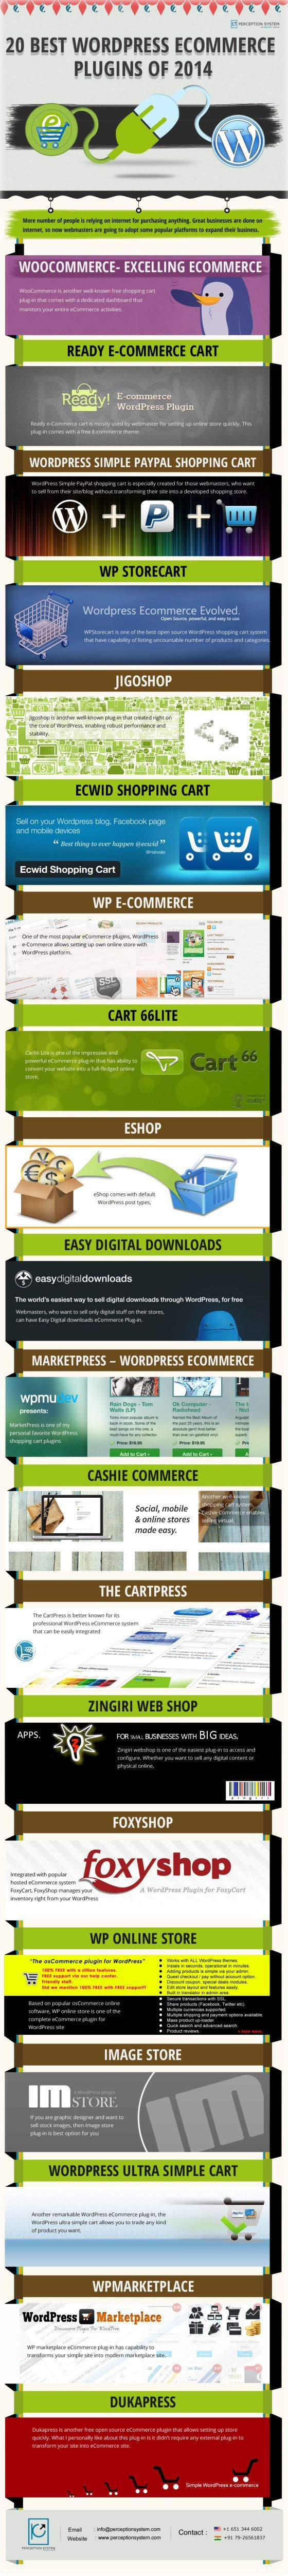 wordpress plugins e-commerce